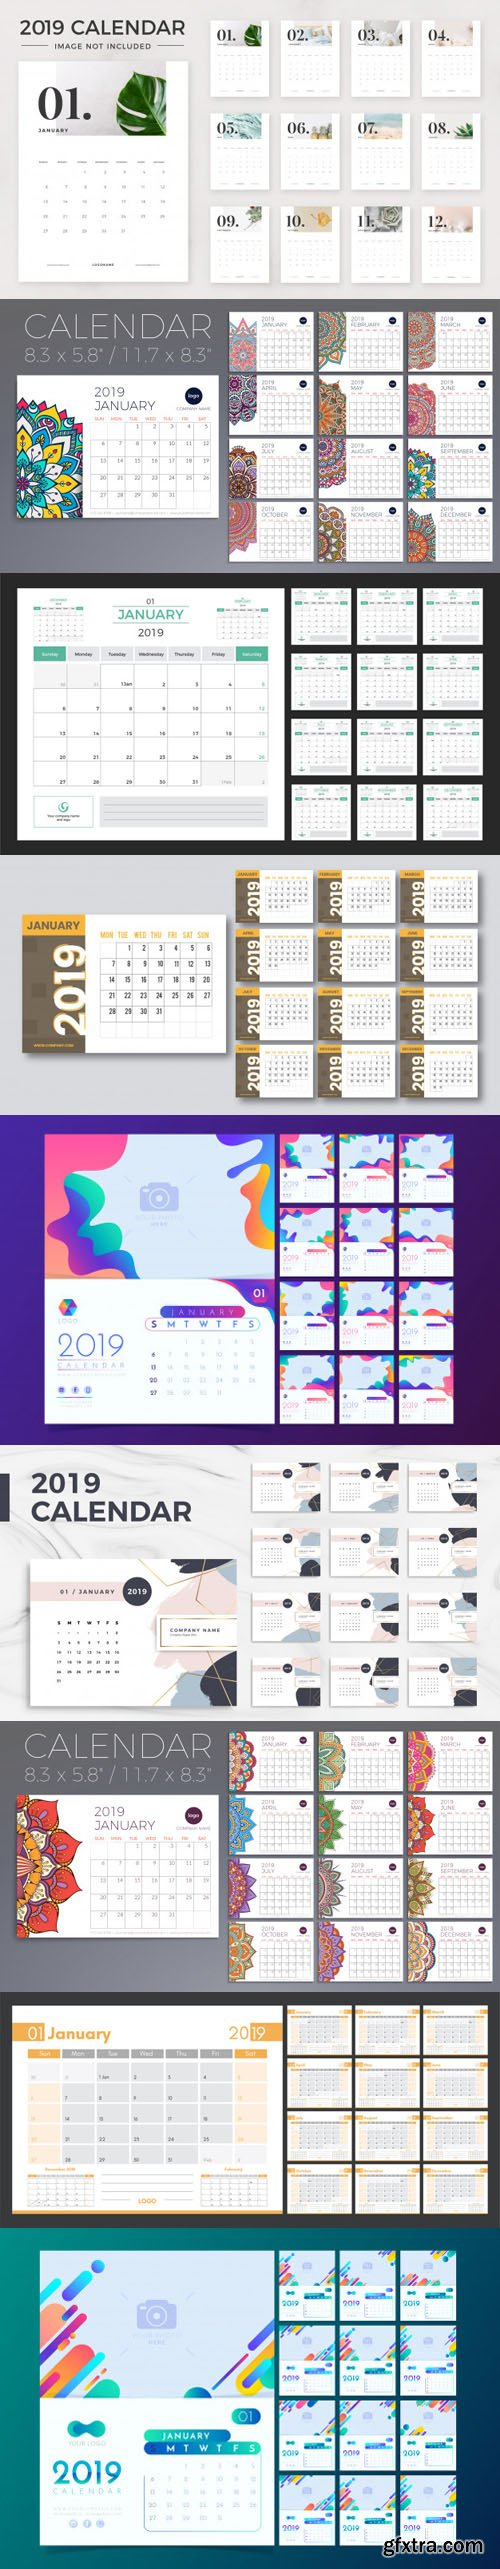 2019 Calendar Vector Templates Collection 6 [ 9 Calendars ]